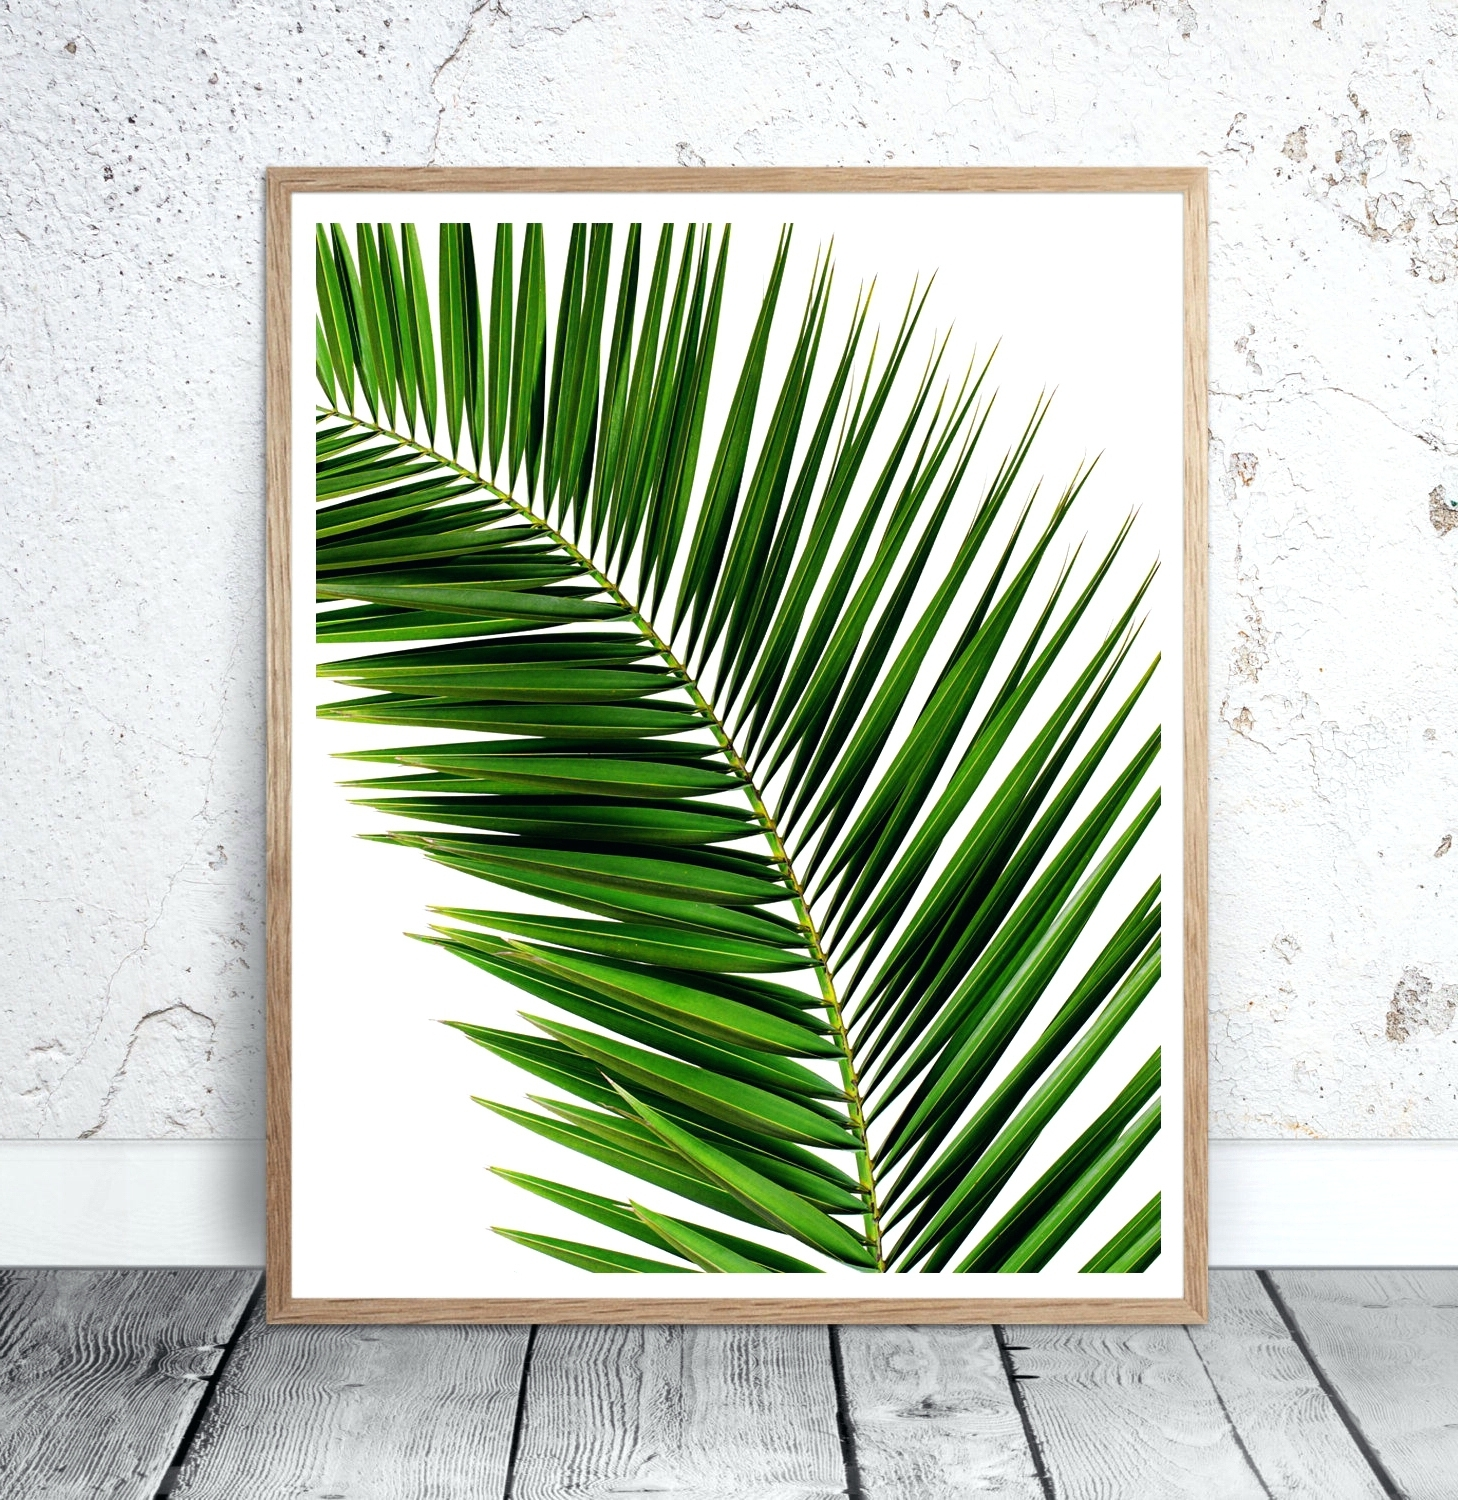 regard date photo leaf contemporary gallery up decor metal and abstract modern most photos of art with wall attachment to showing innovative